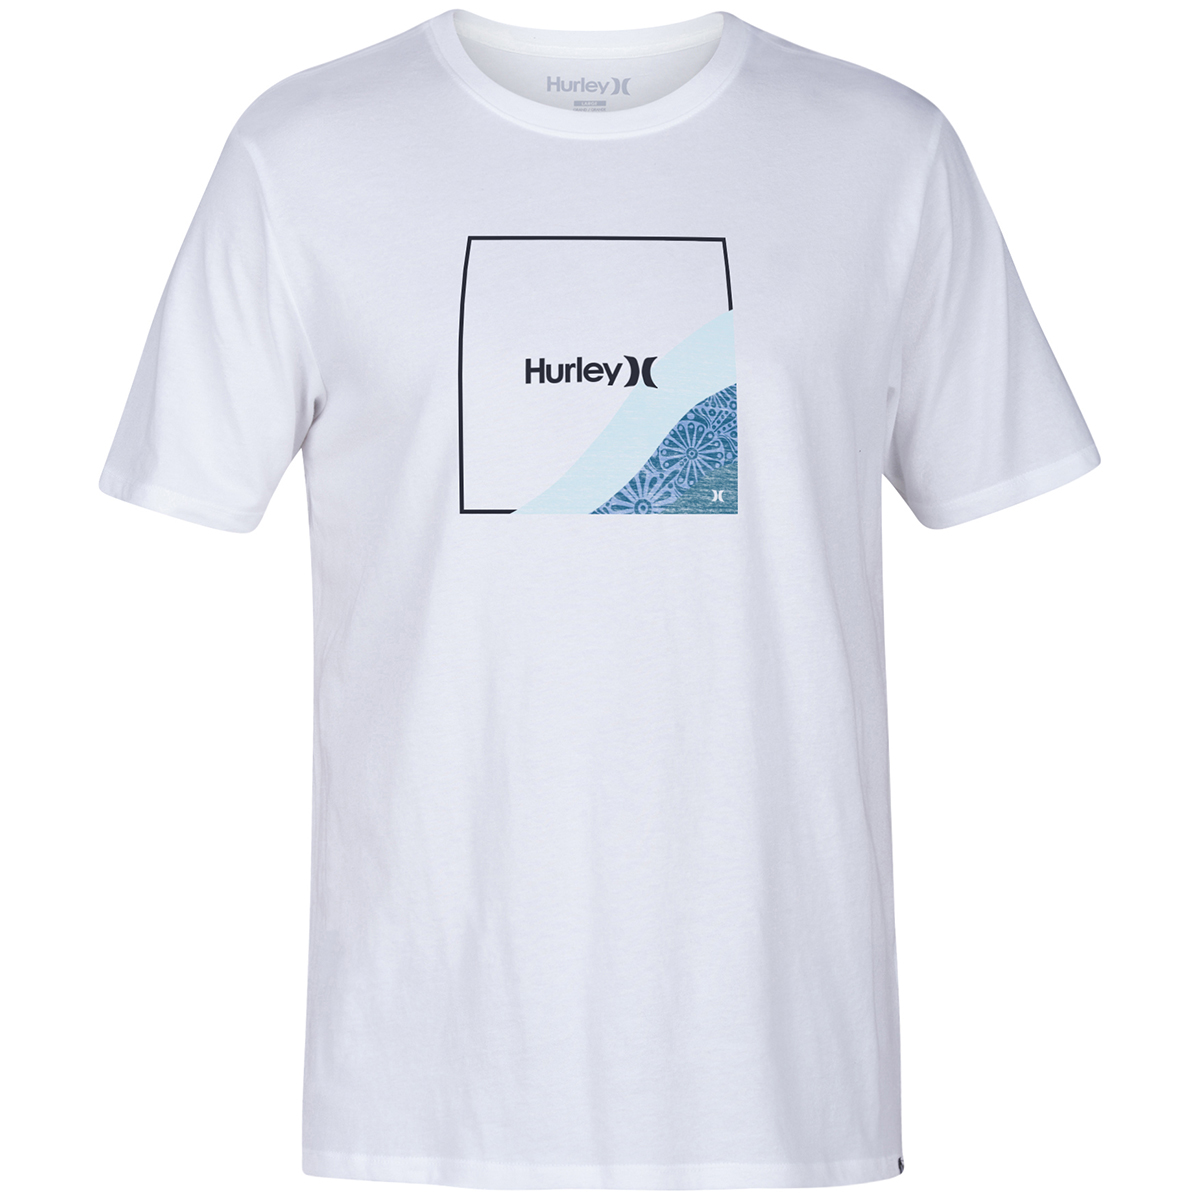 Hurley Young Men's Fader Short-Sleeve T-Shirt - White, M